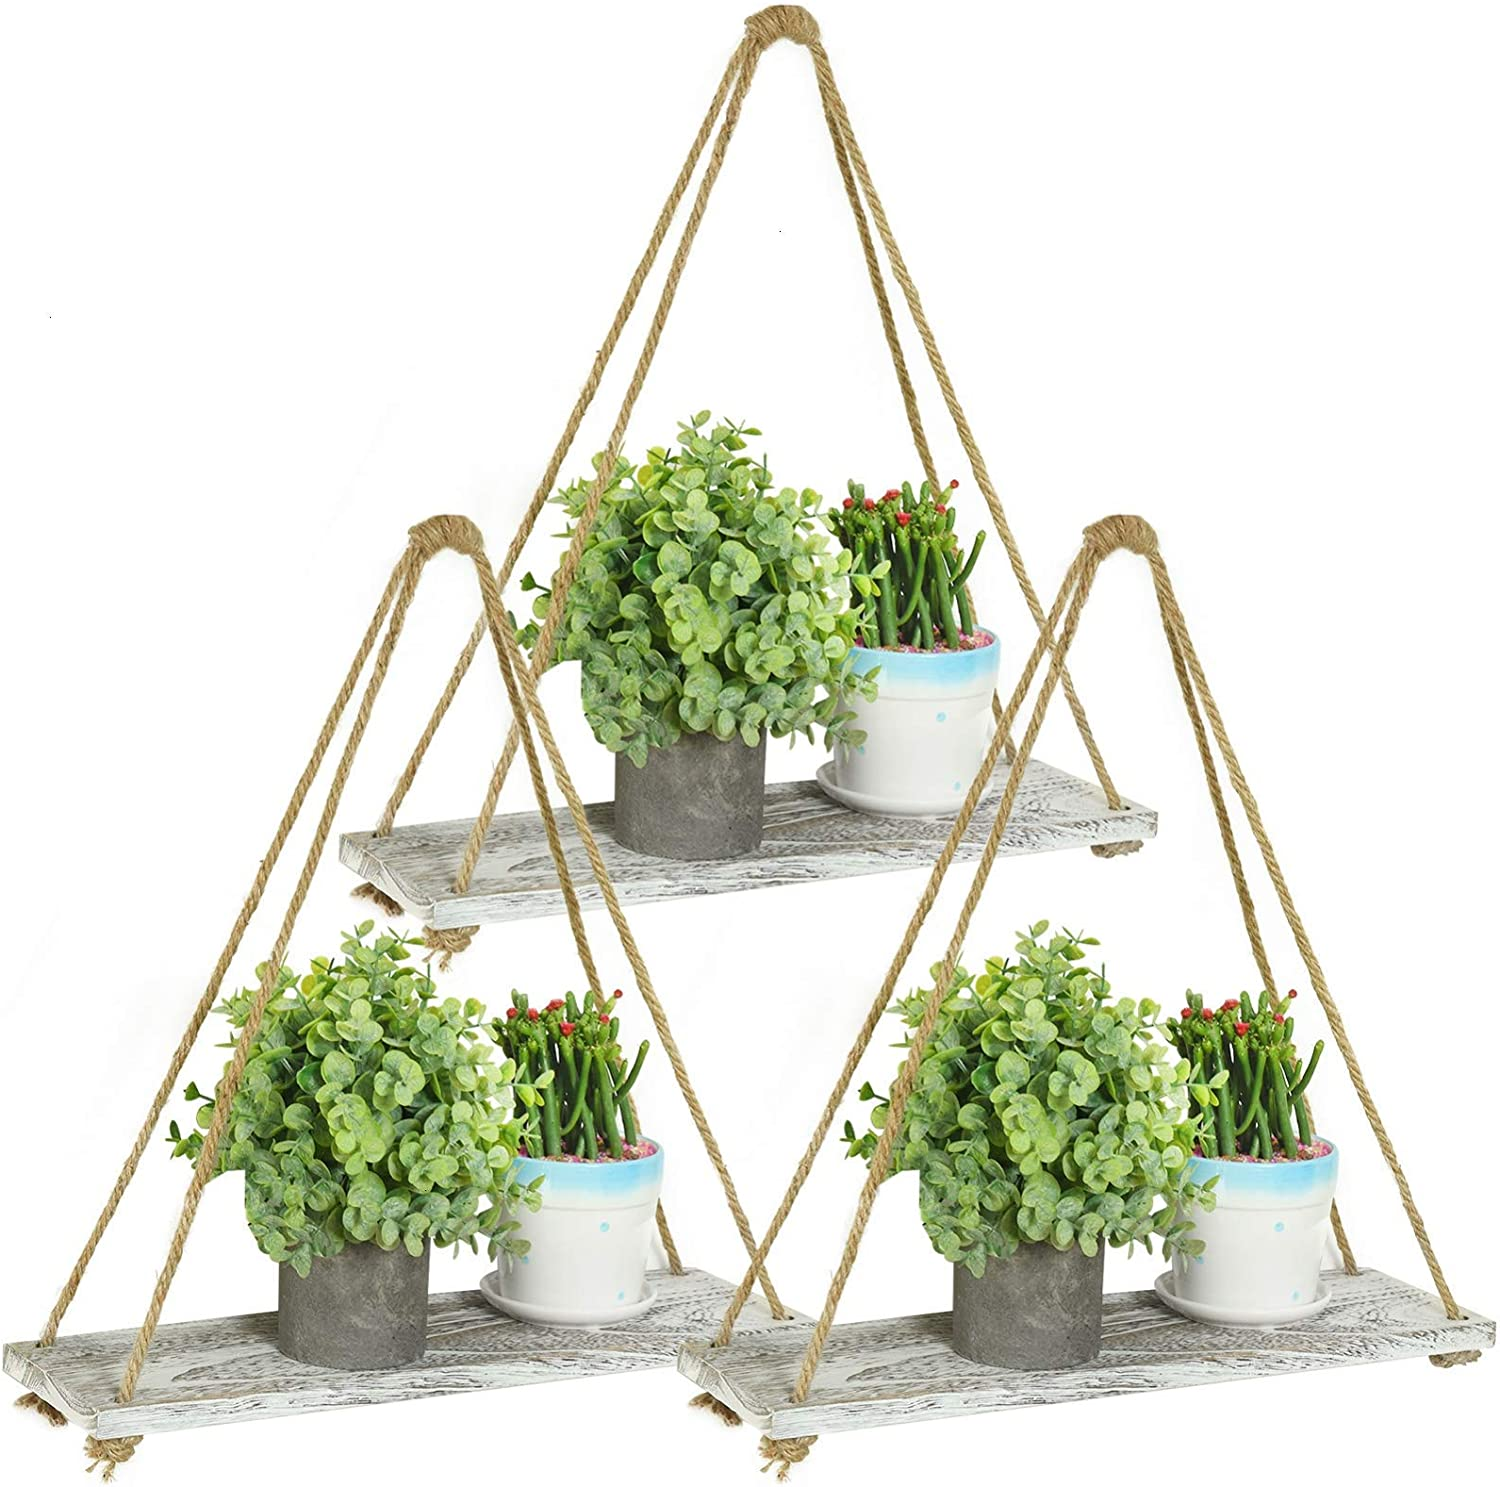 COYMOS Hanging Shelves Rustic Hanging Plant Shelf Indoor Wall Farmhouse Hanging Wall Shelves for Bedroom Home Wall Decor for Livingroom Bathroom Kitchen Triangle Rope Set of 3